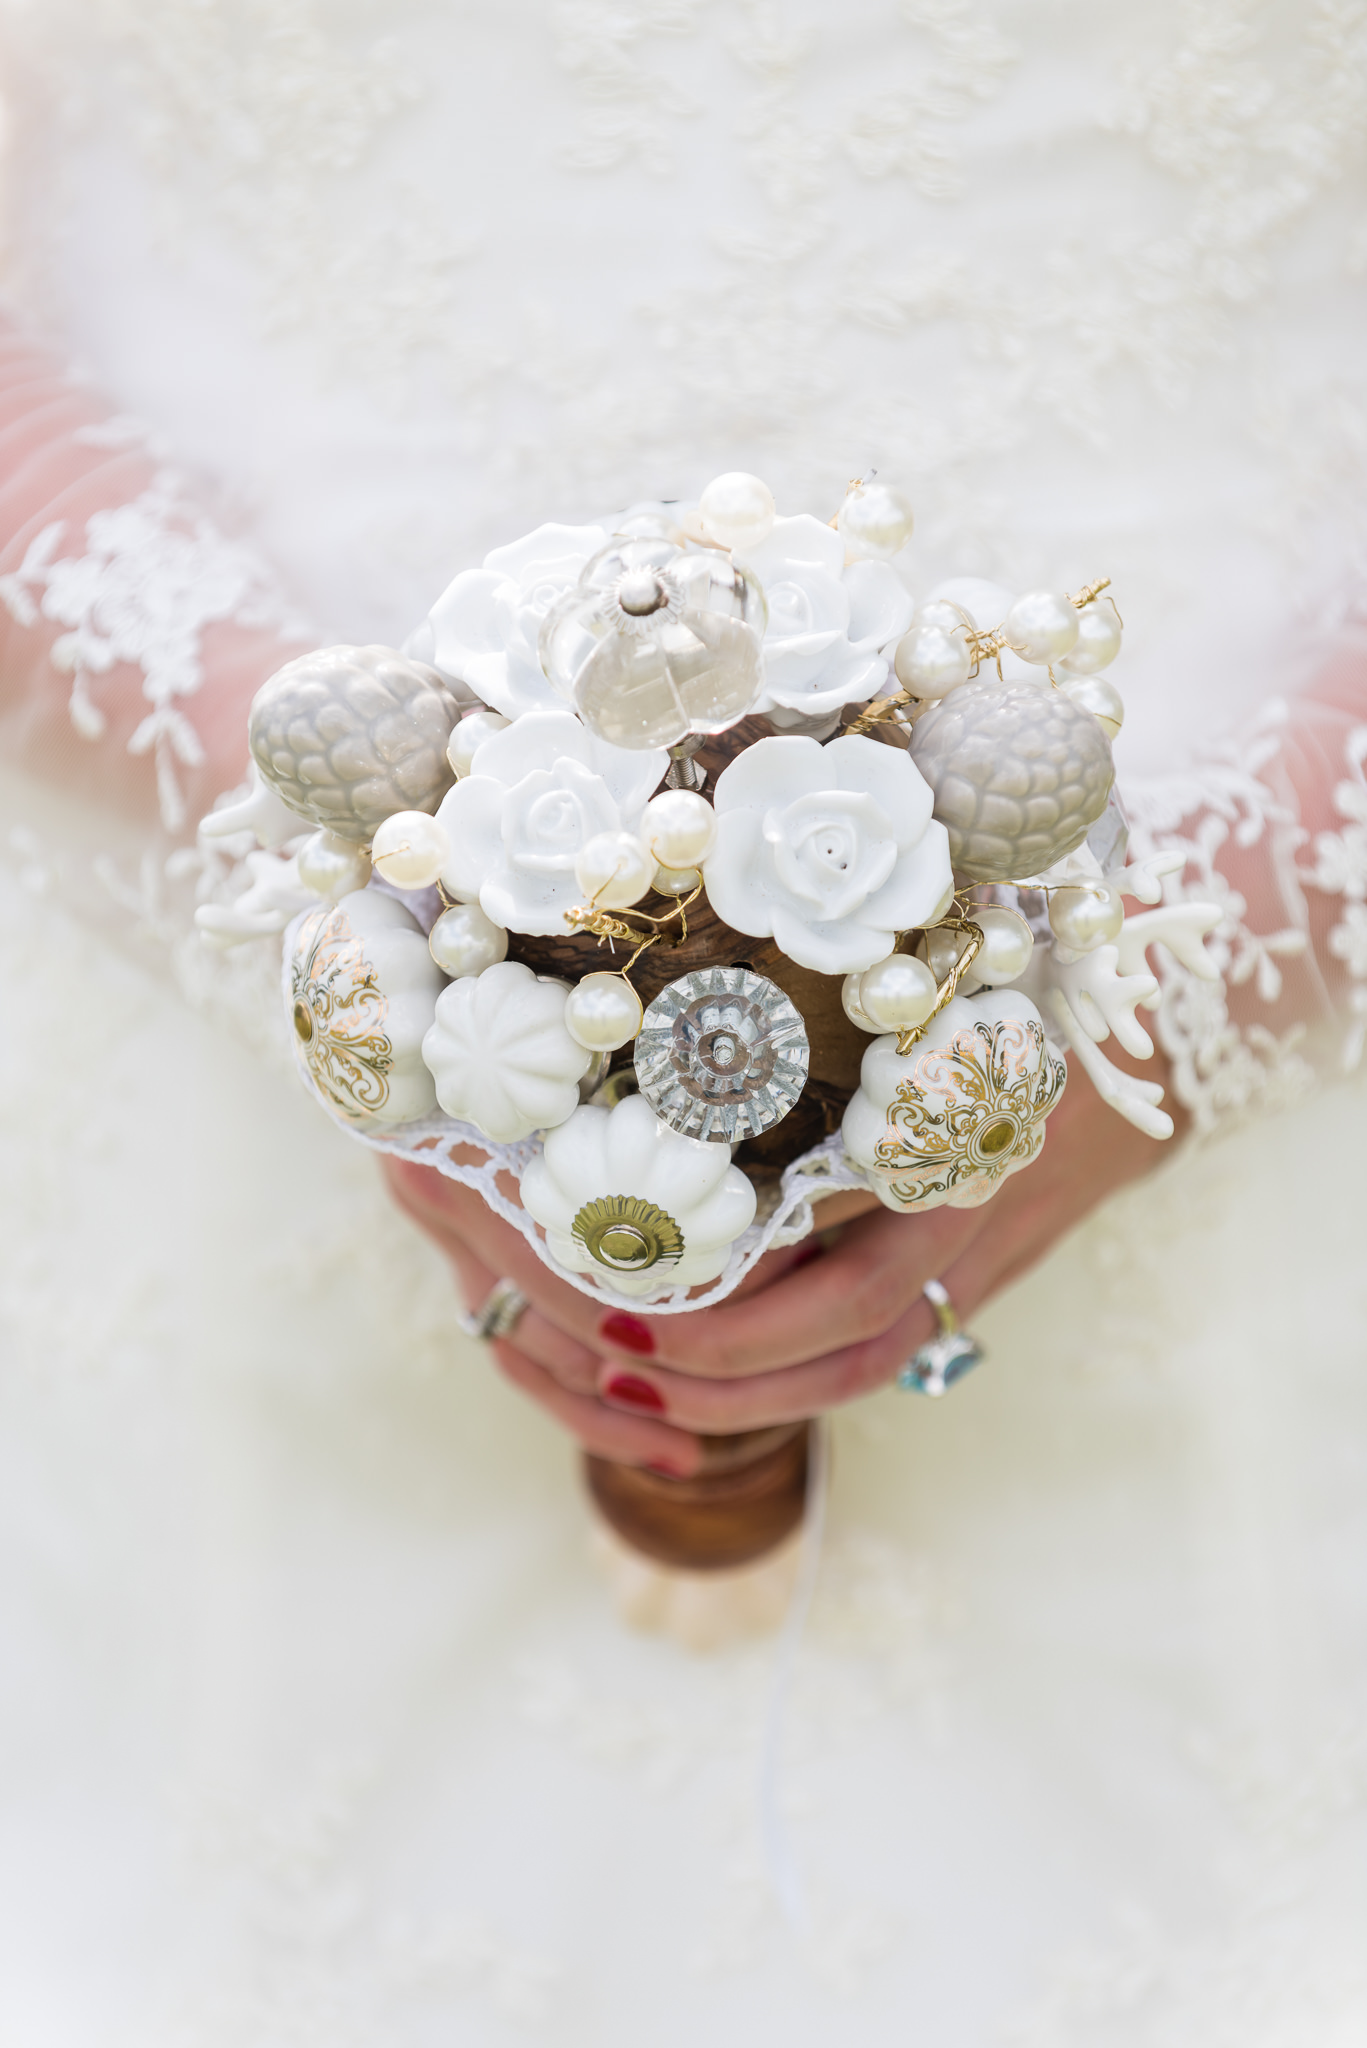 A bouquet made from door knobs and pepper grinders